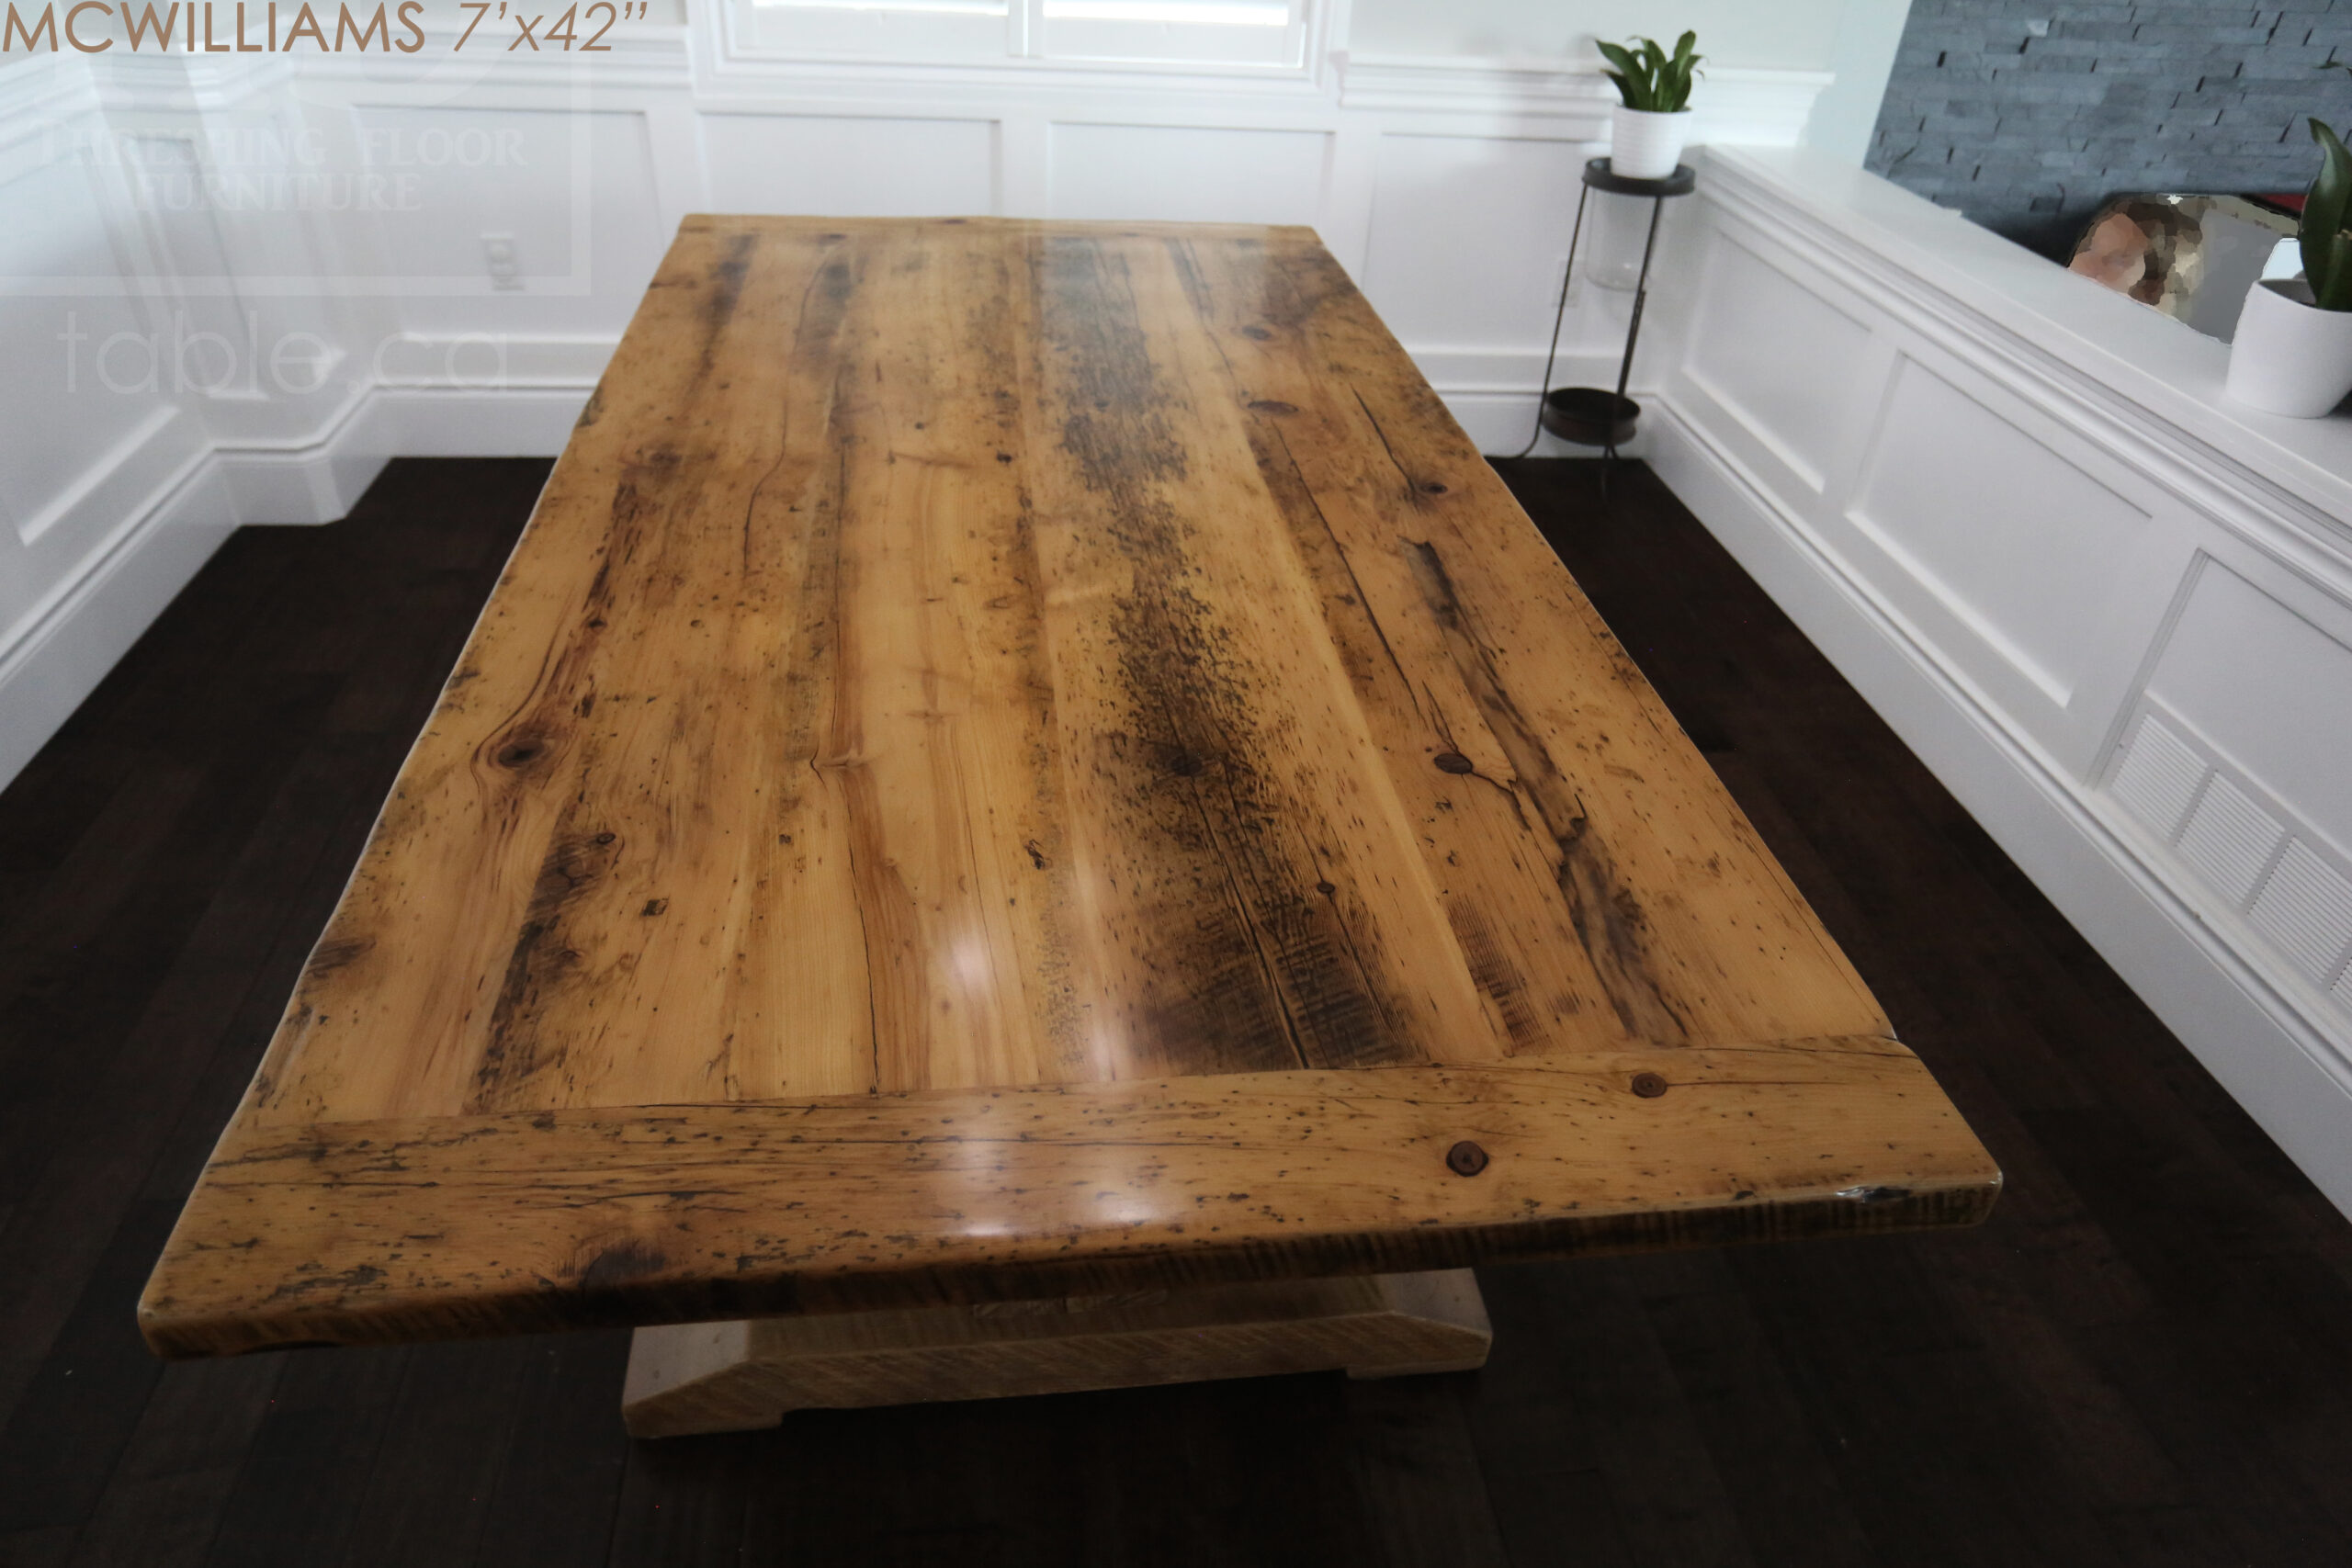 """7' Reclaimed Wood Pedestal Table we made for a Cambridge, Ontario home - 42"""" wide - Beam Posts + Rail Option - Old Growth Hemlock Threshing Floor Construction - Original edges & distressing maintained - Greytone Treatment Option - Premium epoxy + satin polyurethane finish - Two 18"""" leaves [making total length 10 ft when extended] - www.table.ca"""